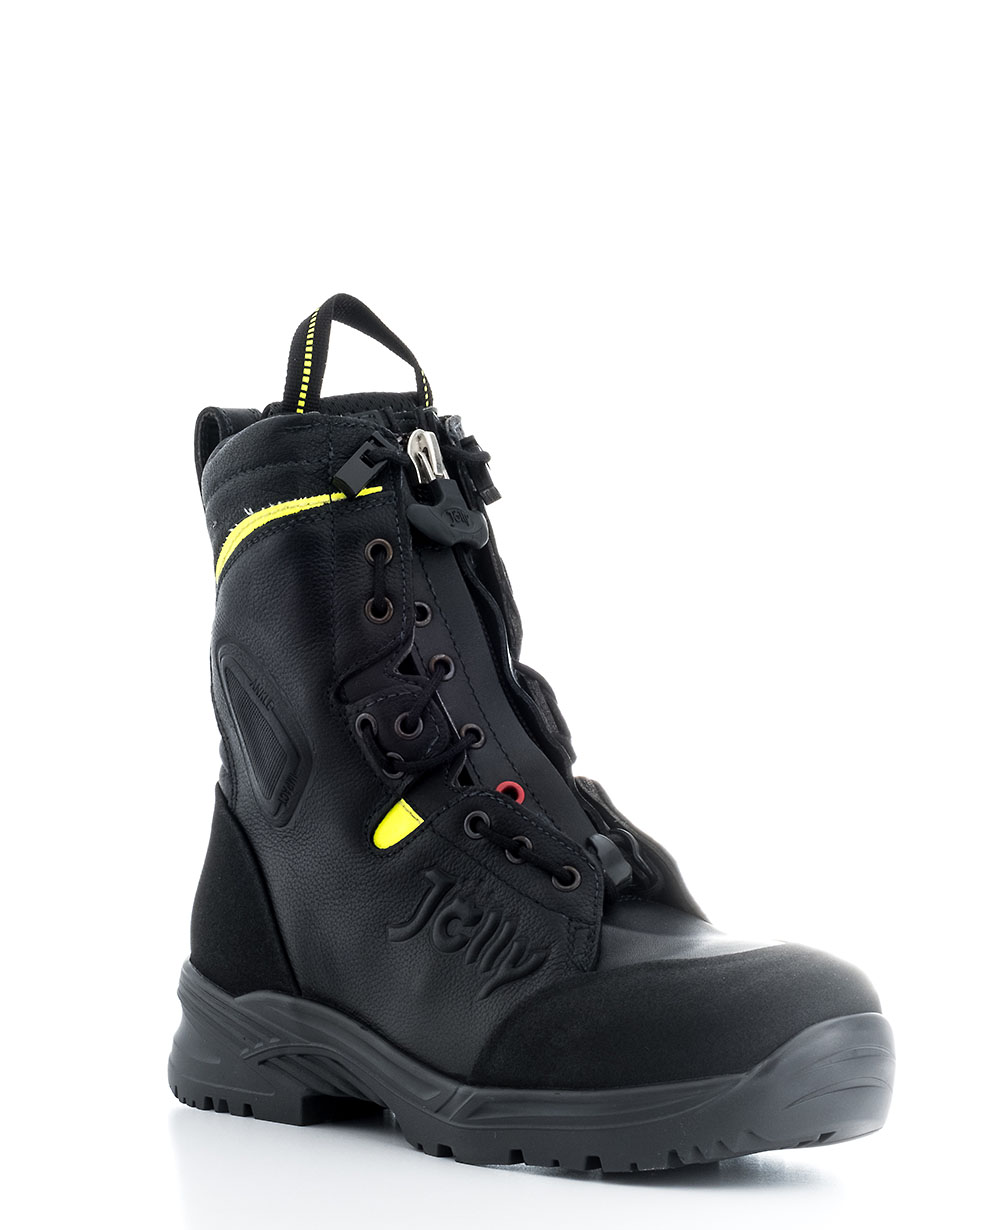 Shoes by Minverva | Safety Footwear